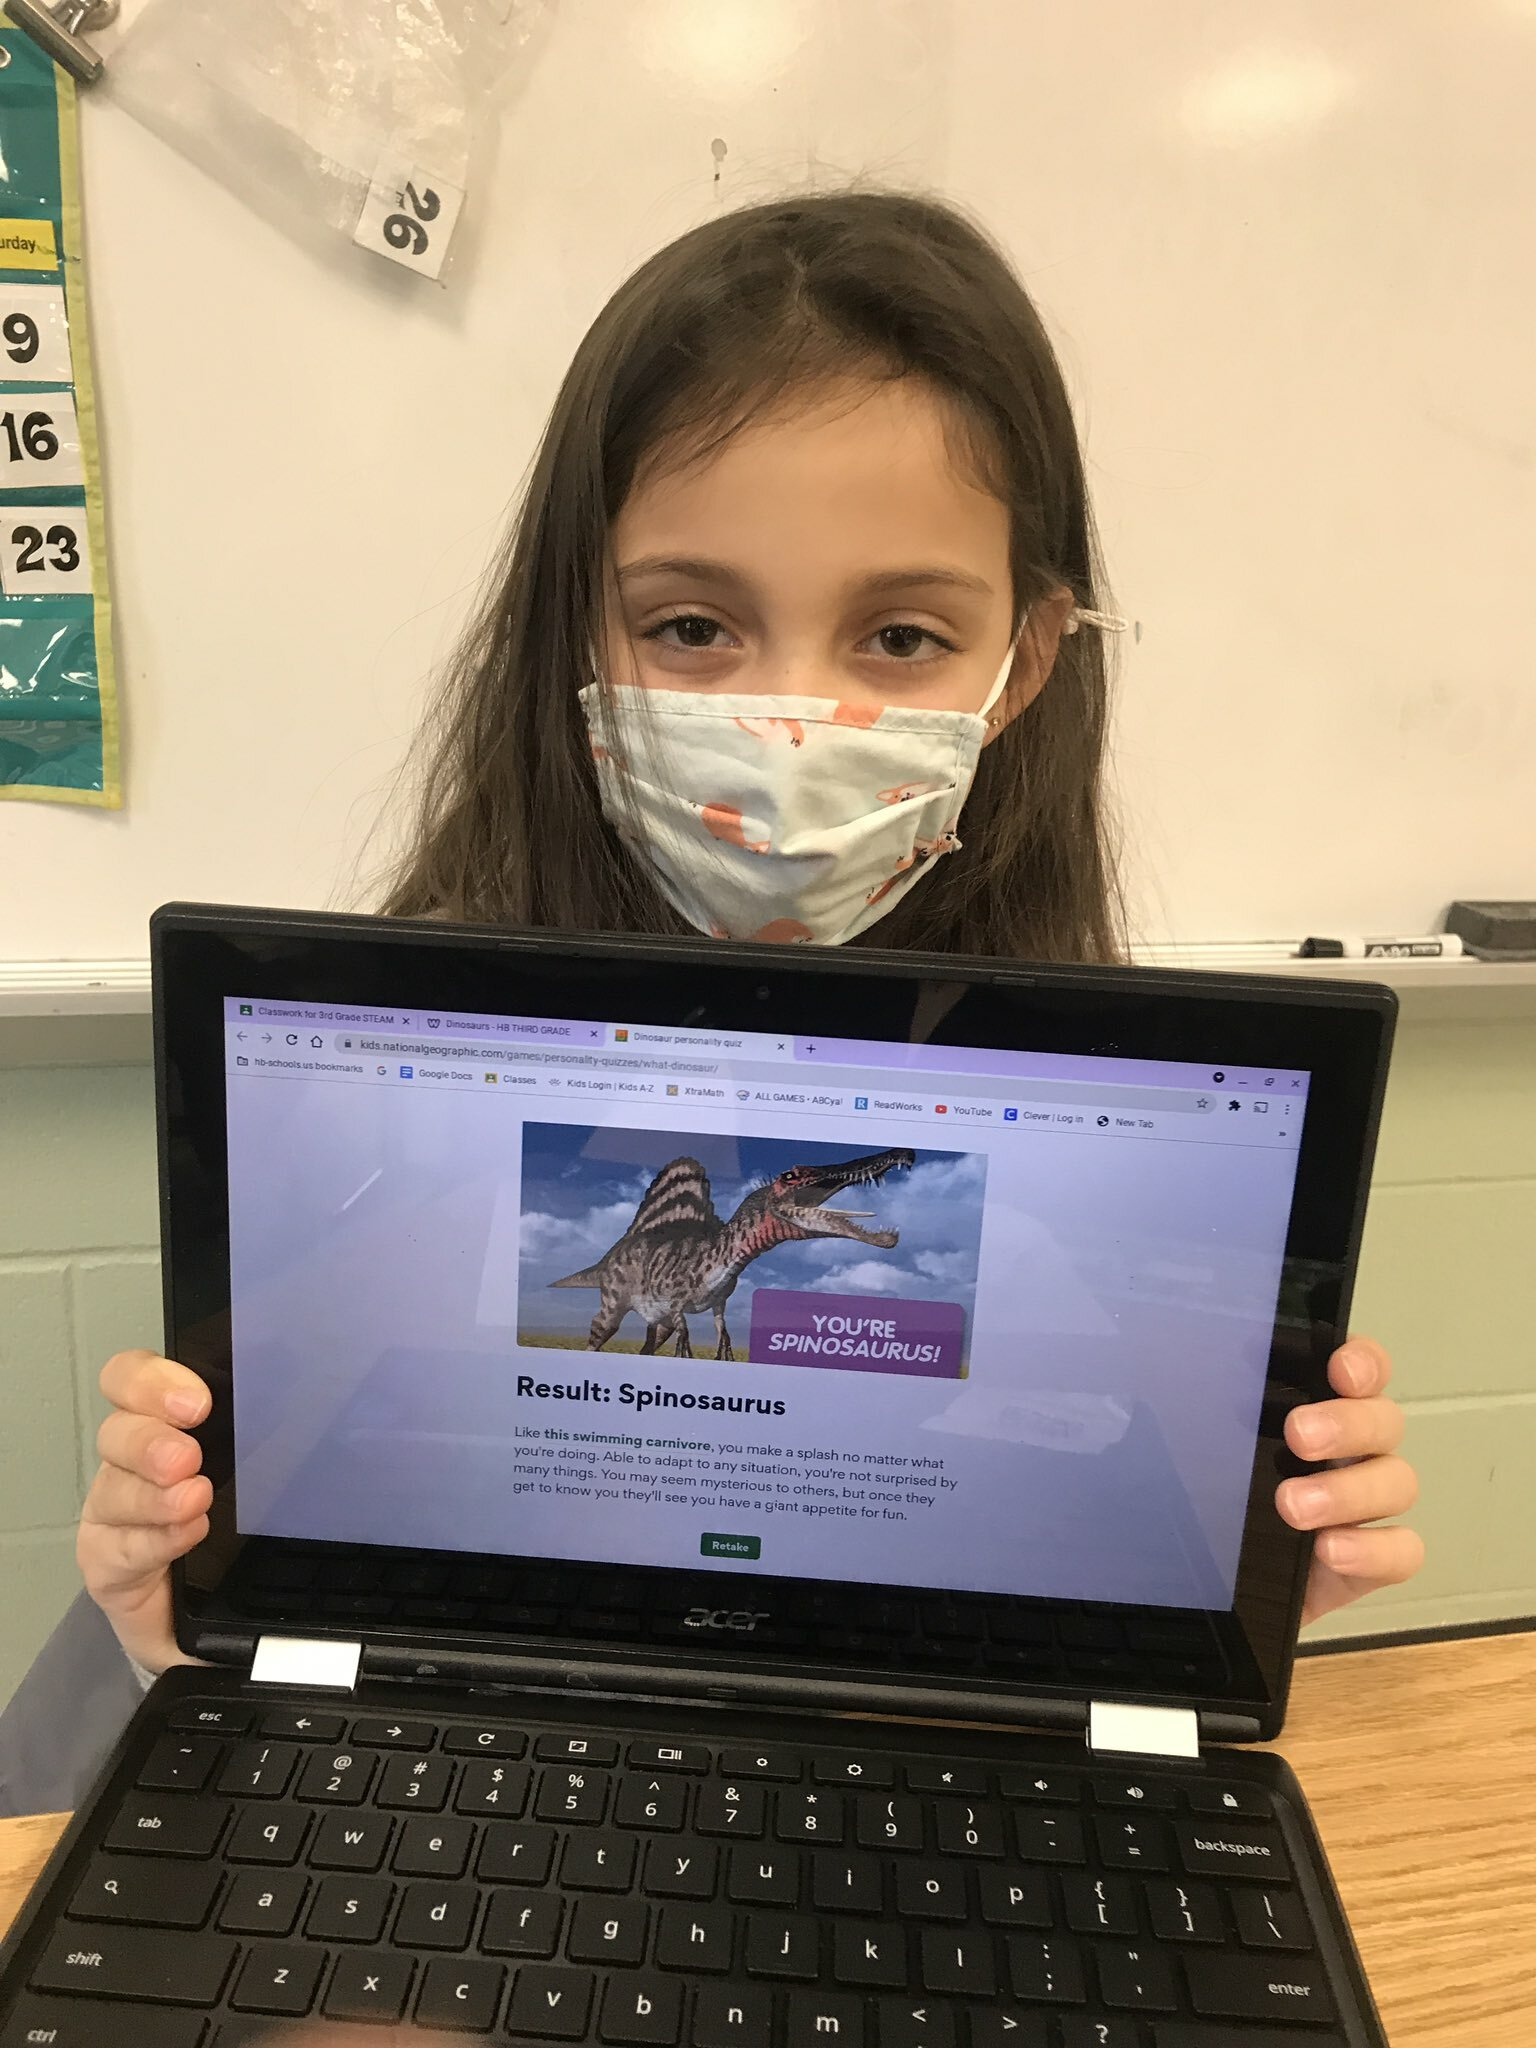 After learning about fossils and dinosaurs, the third graders in Karen Lombardo's class at Hampton Bays Elementary School discovered what type of dinosaur they would be. The personality test was completed using a National Geographic application. Students were surprised to learn that they could have been a Stegosaurus or even a Tyrannosaurus rex.